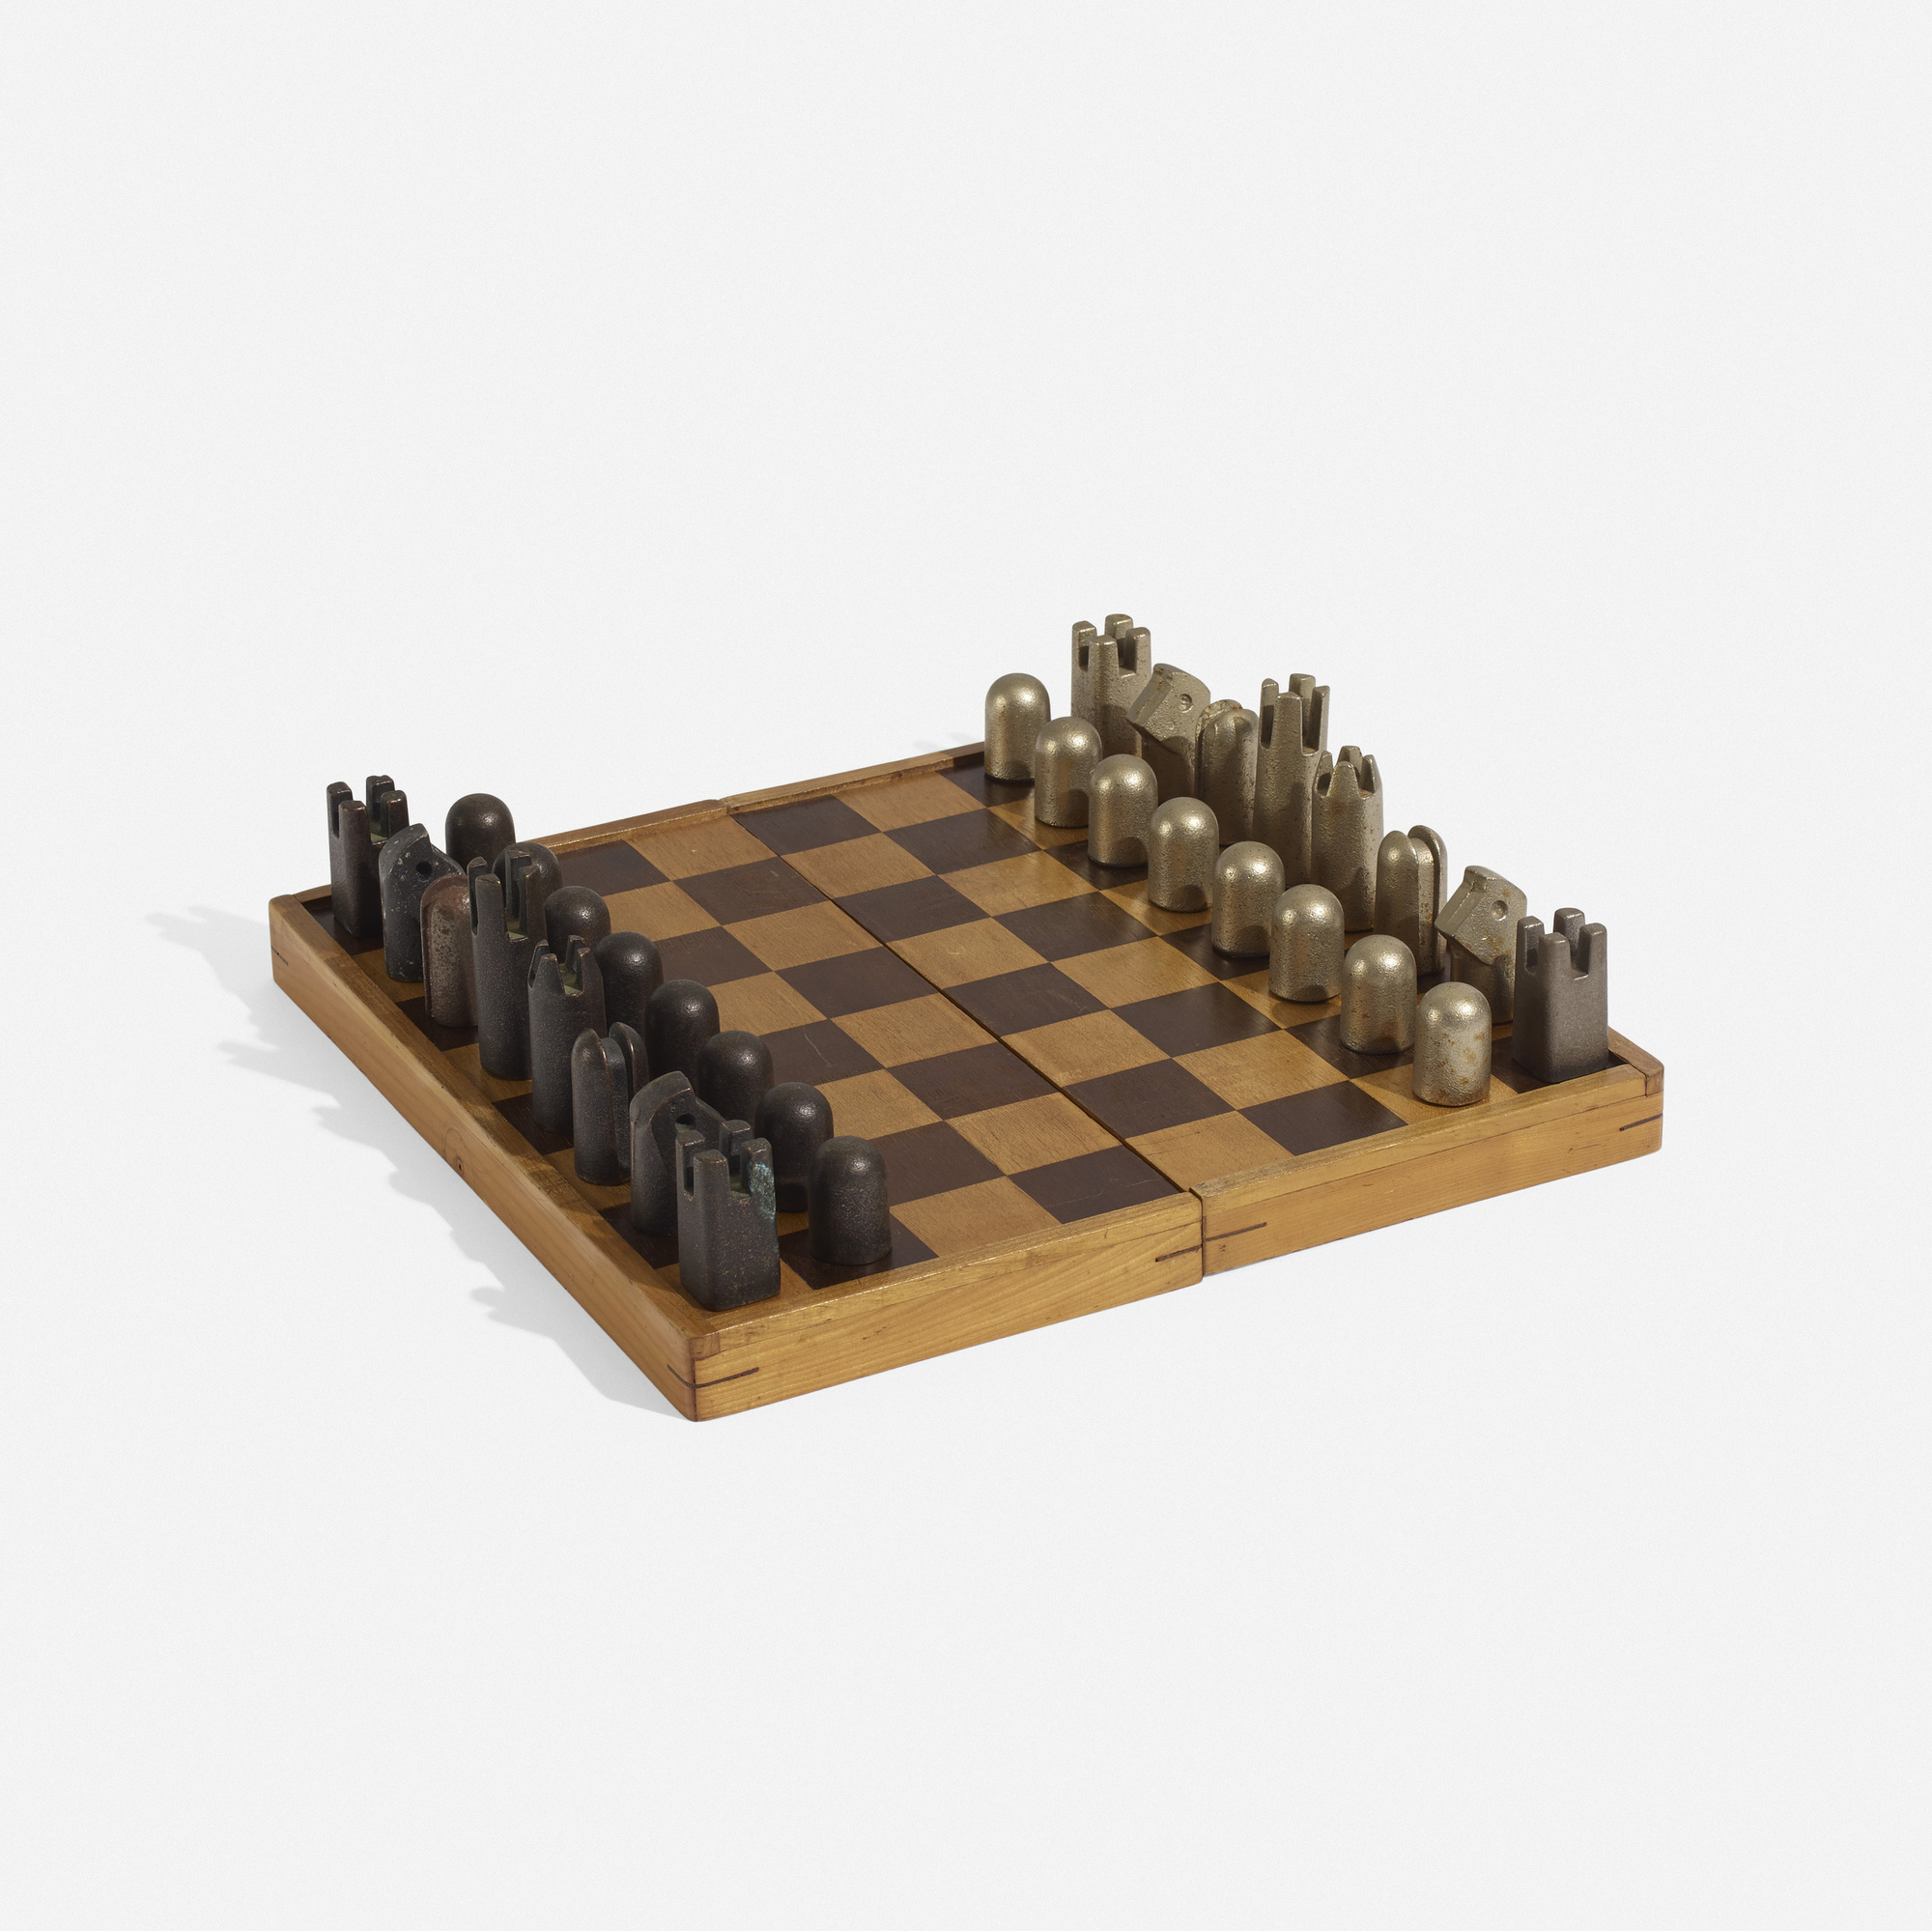 121: Carl Auböck III / chess set (2 of 4)